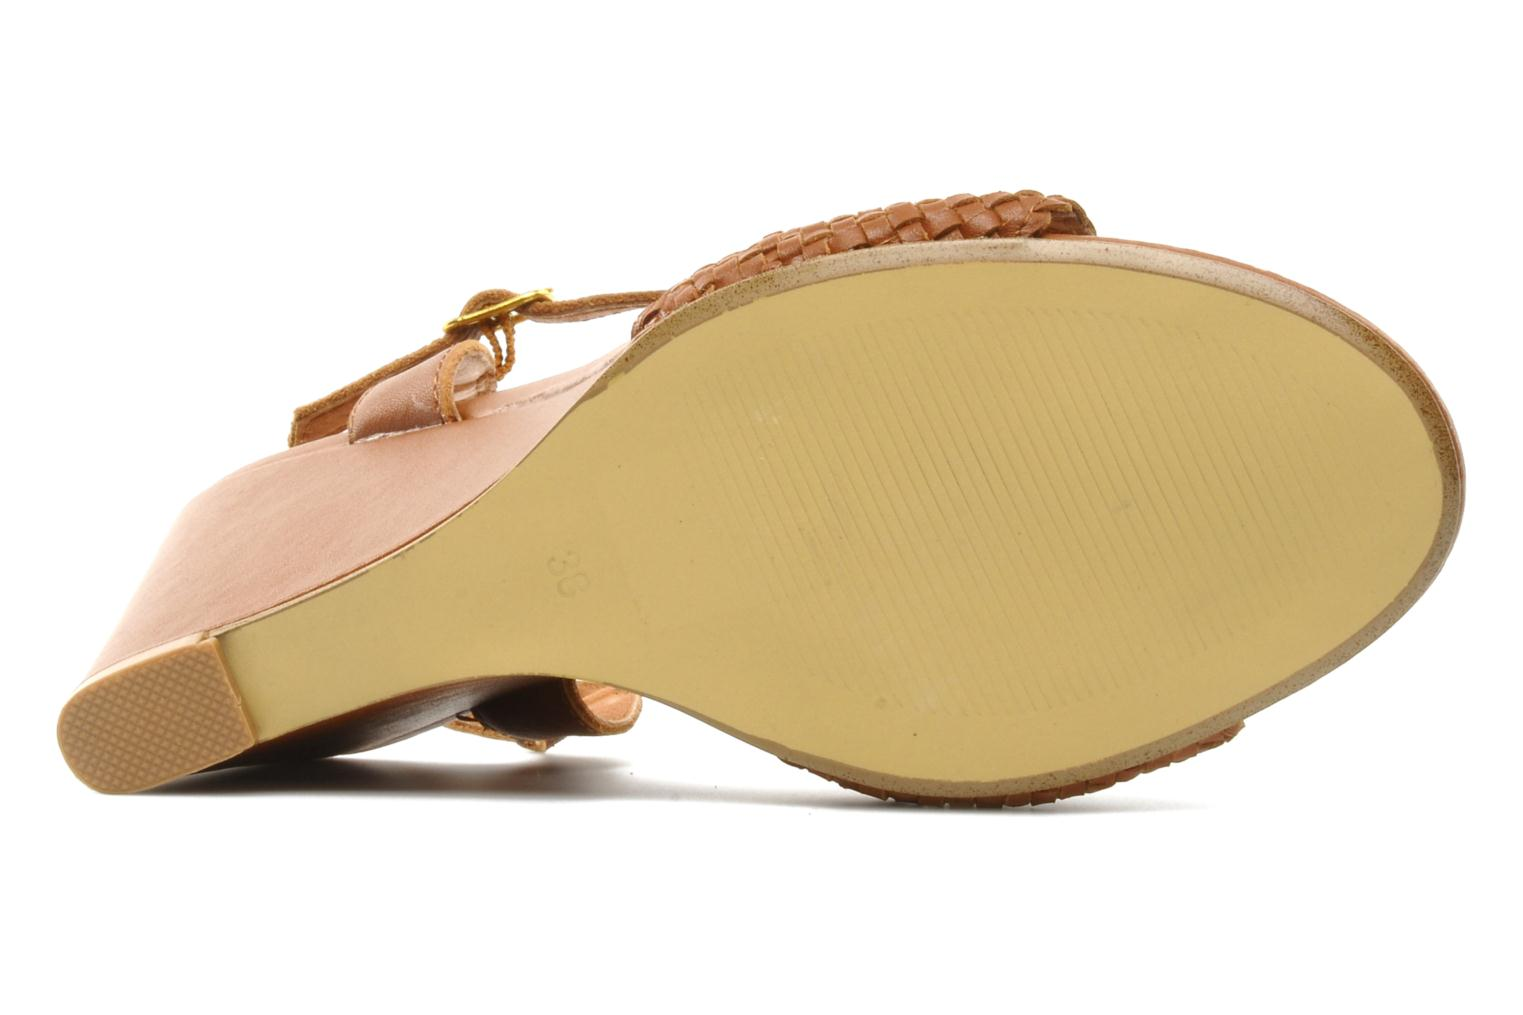 Flore Camel leather